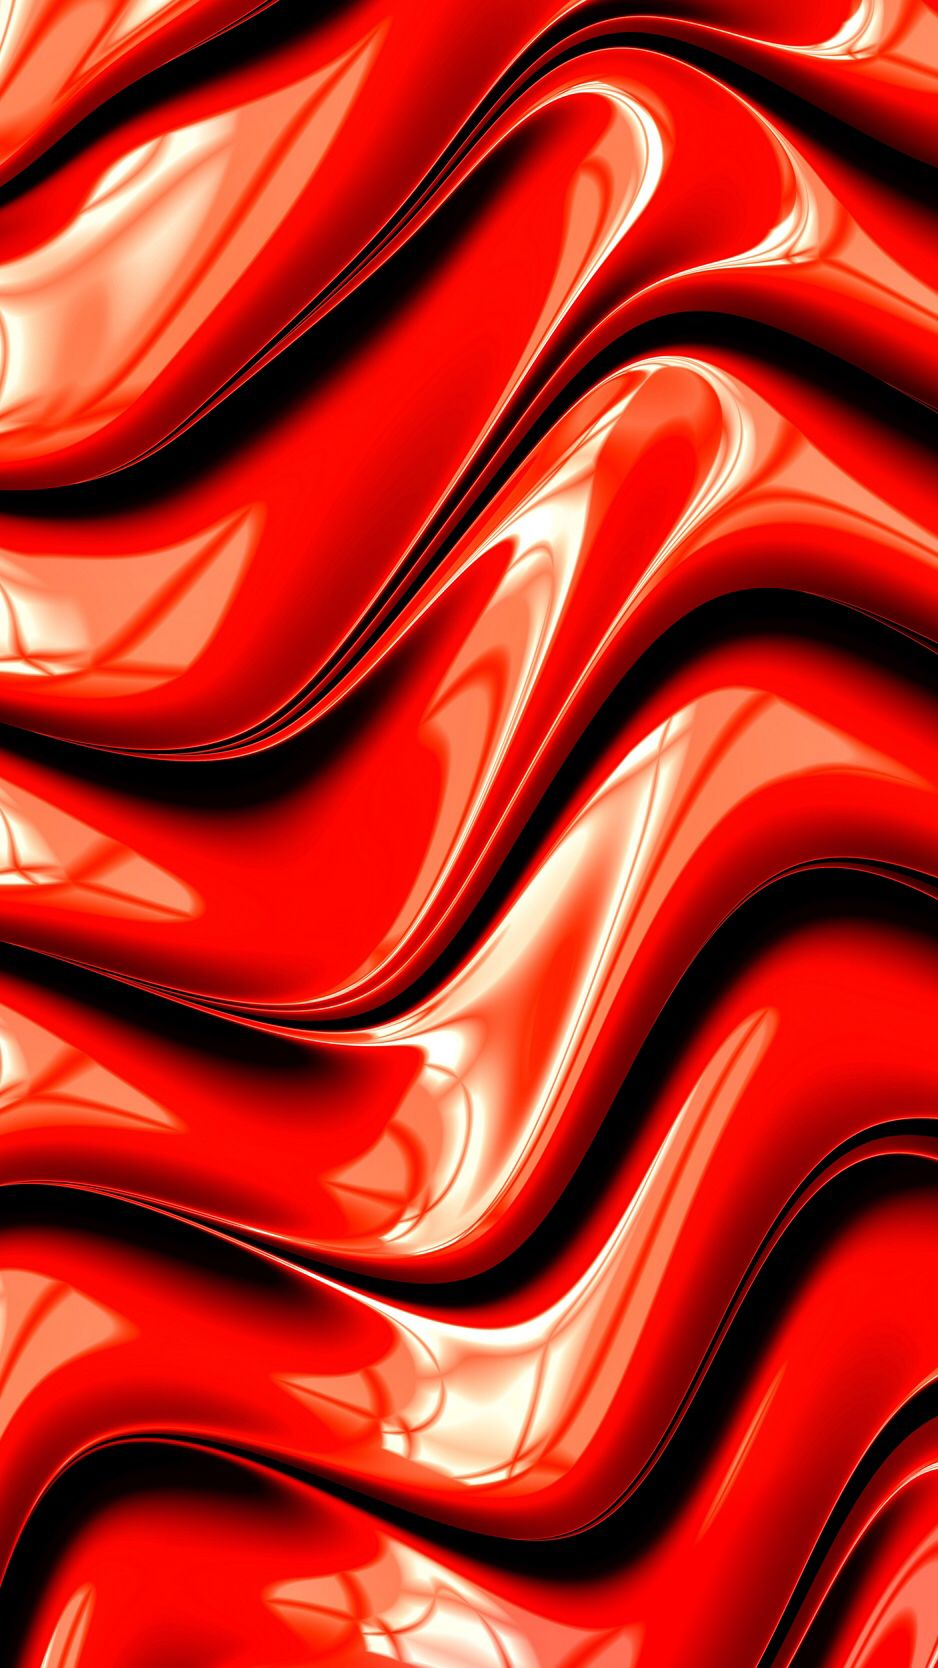 Hot Background Red wallpaper 3d wallpaper red Colorful wallpaper 938x1668